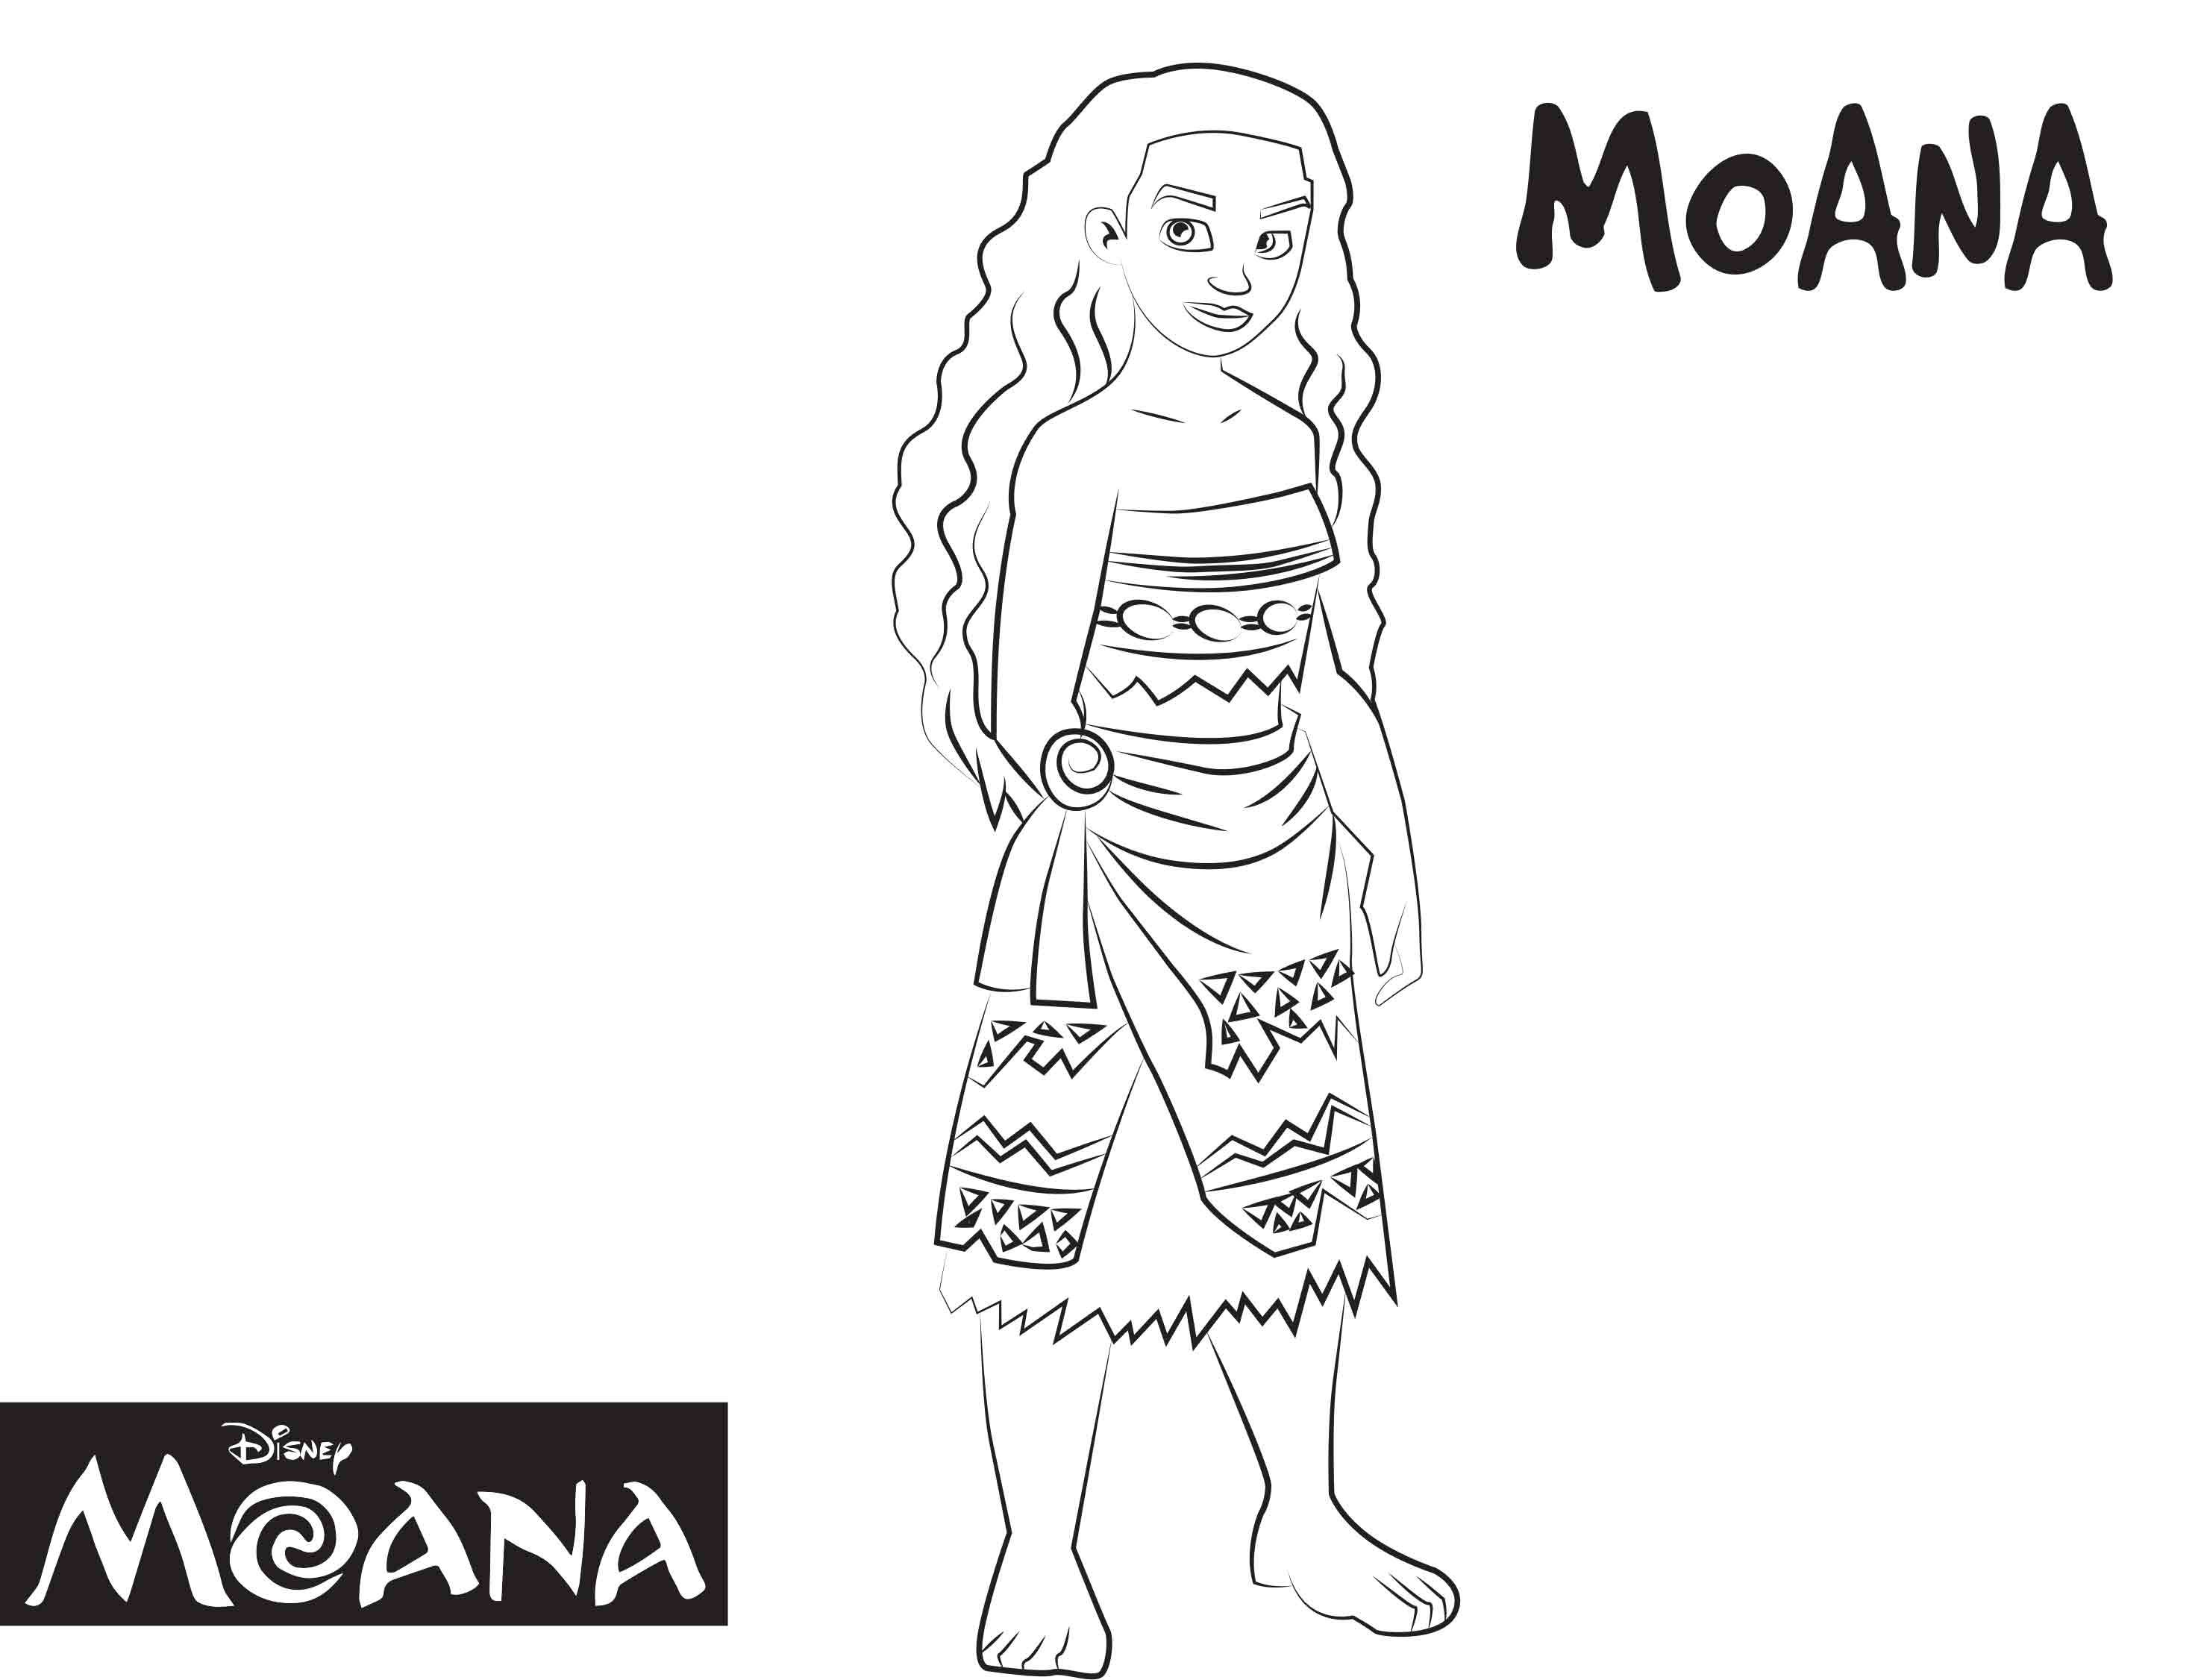 Disney\'s Moana Coloring Pages Sheet, Free Disney Printable Moana ...